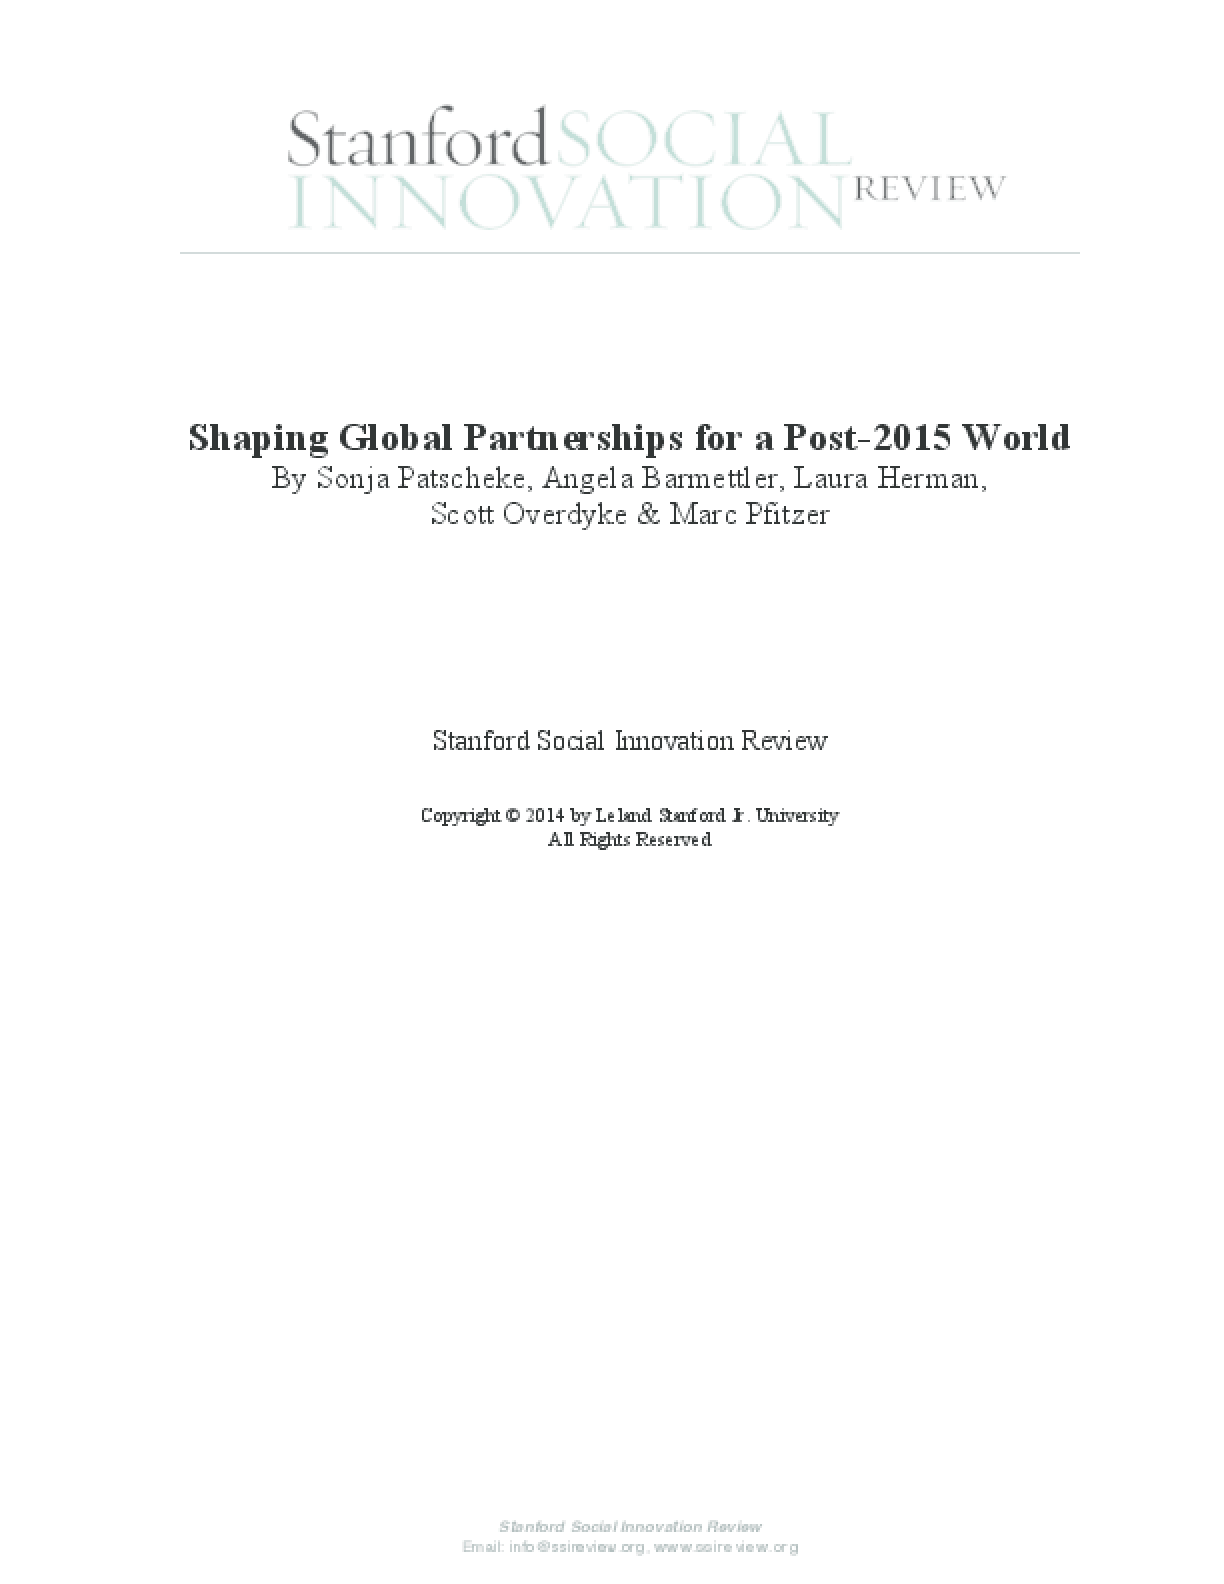 Shaping Global Partnerships for a Post-2015 World